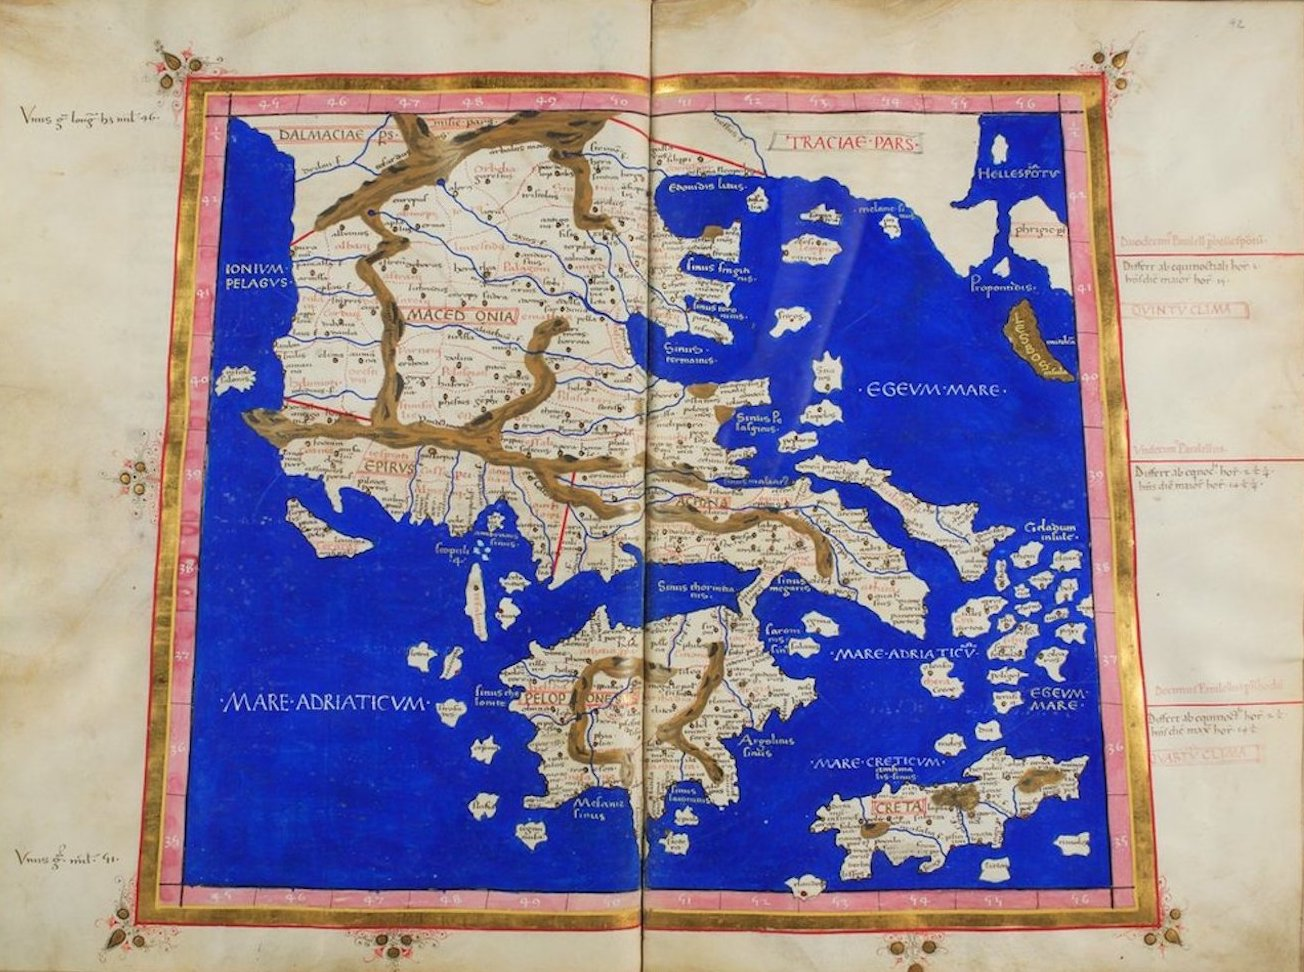 Ptolemy's Map of Europe - X